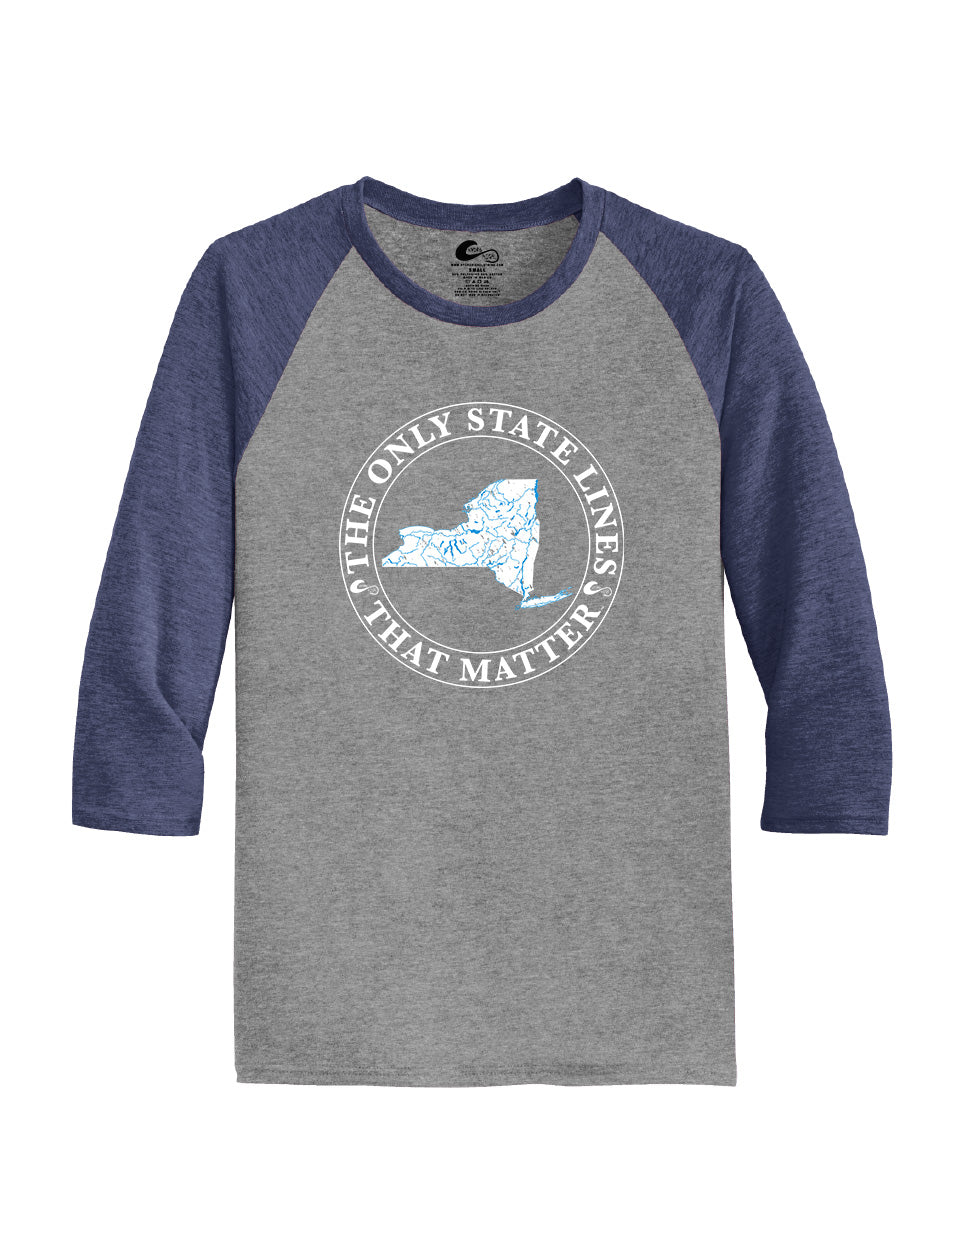 New York State Waterways Raglan Shirt